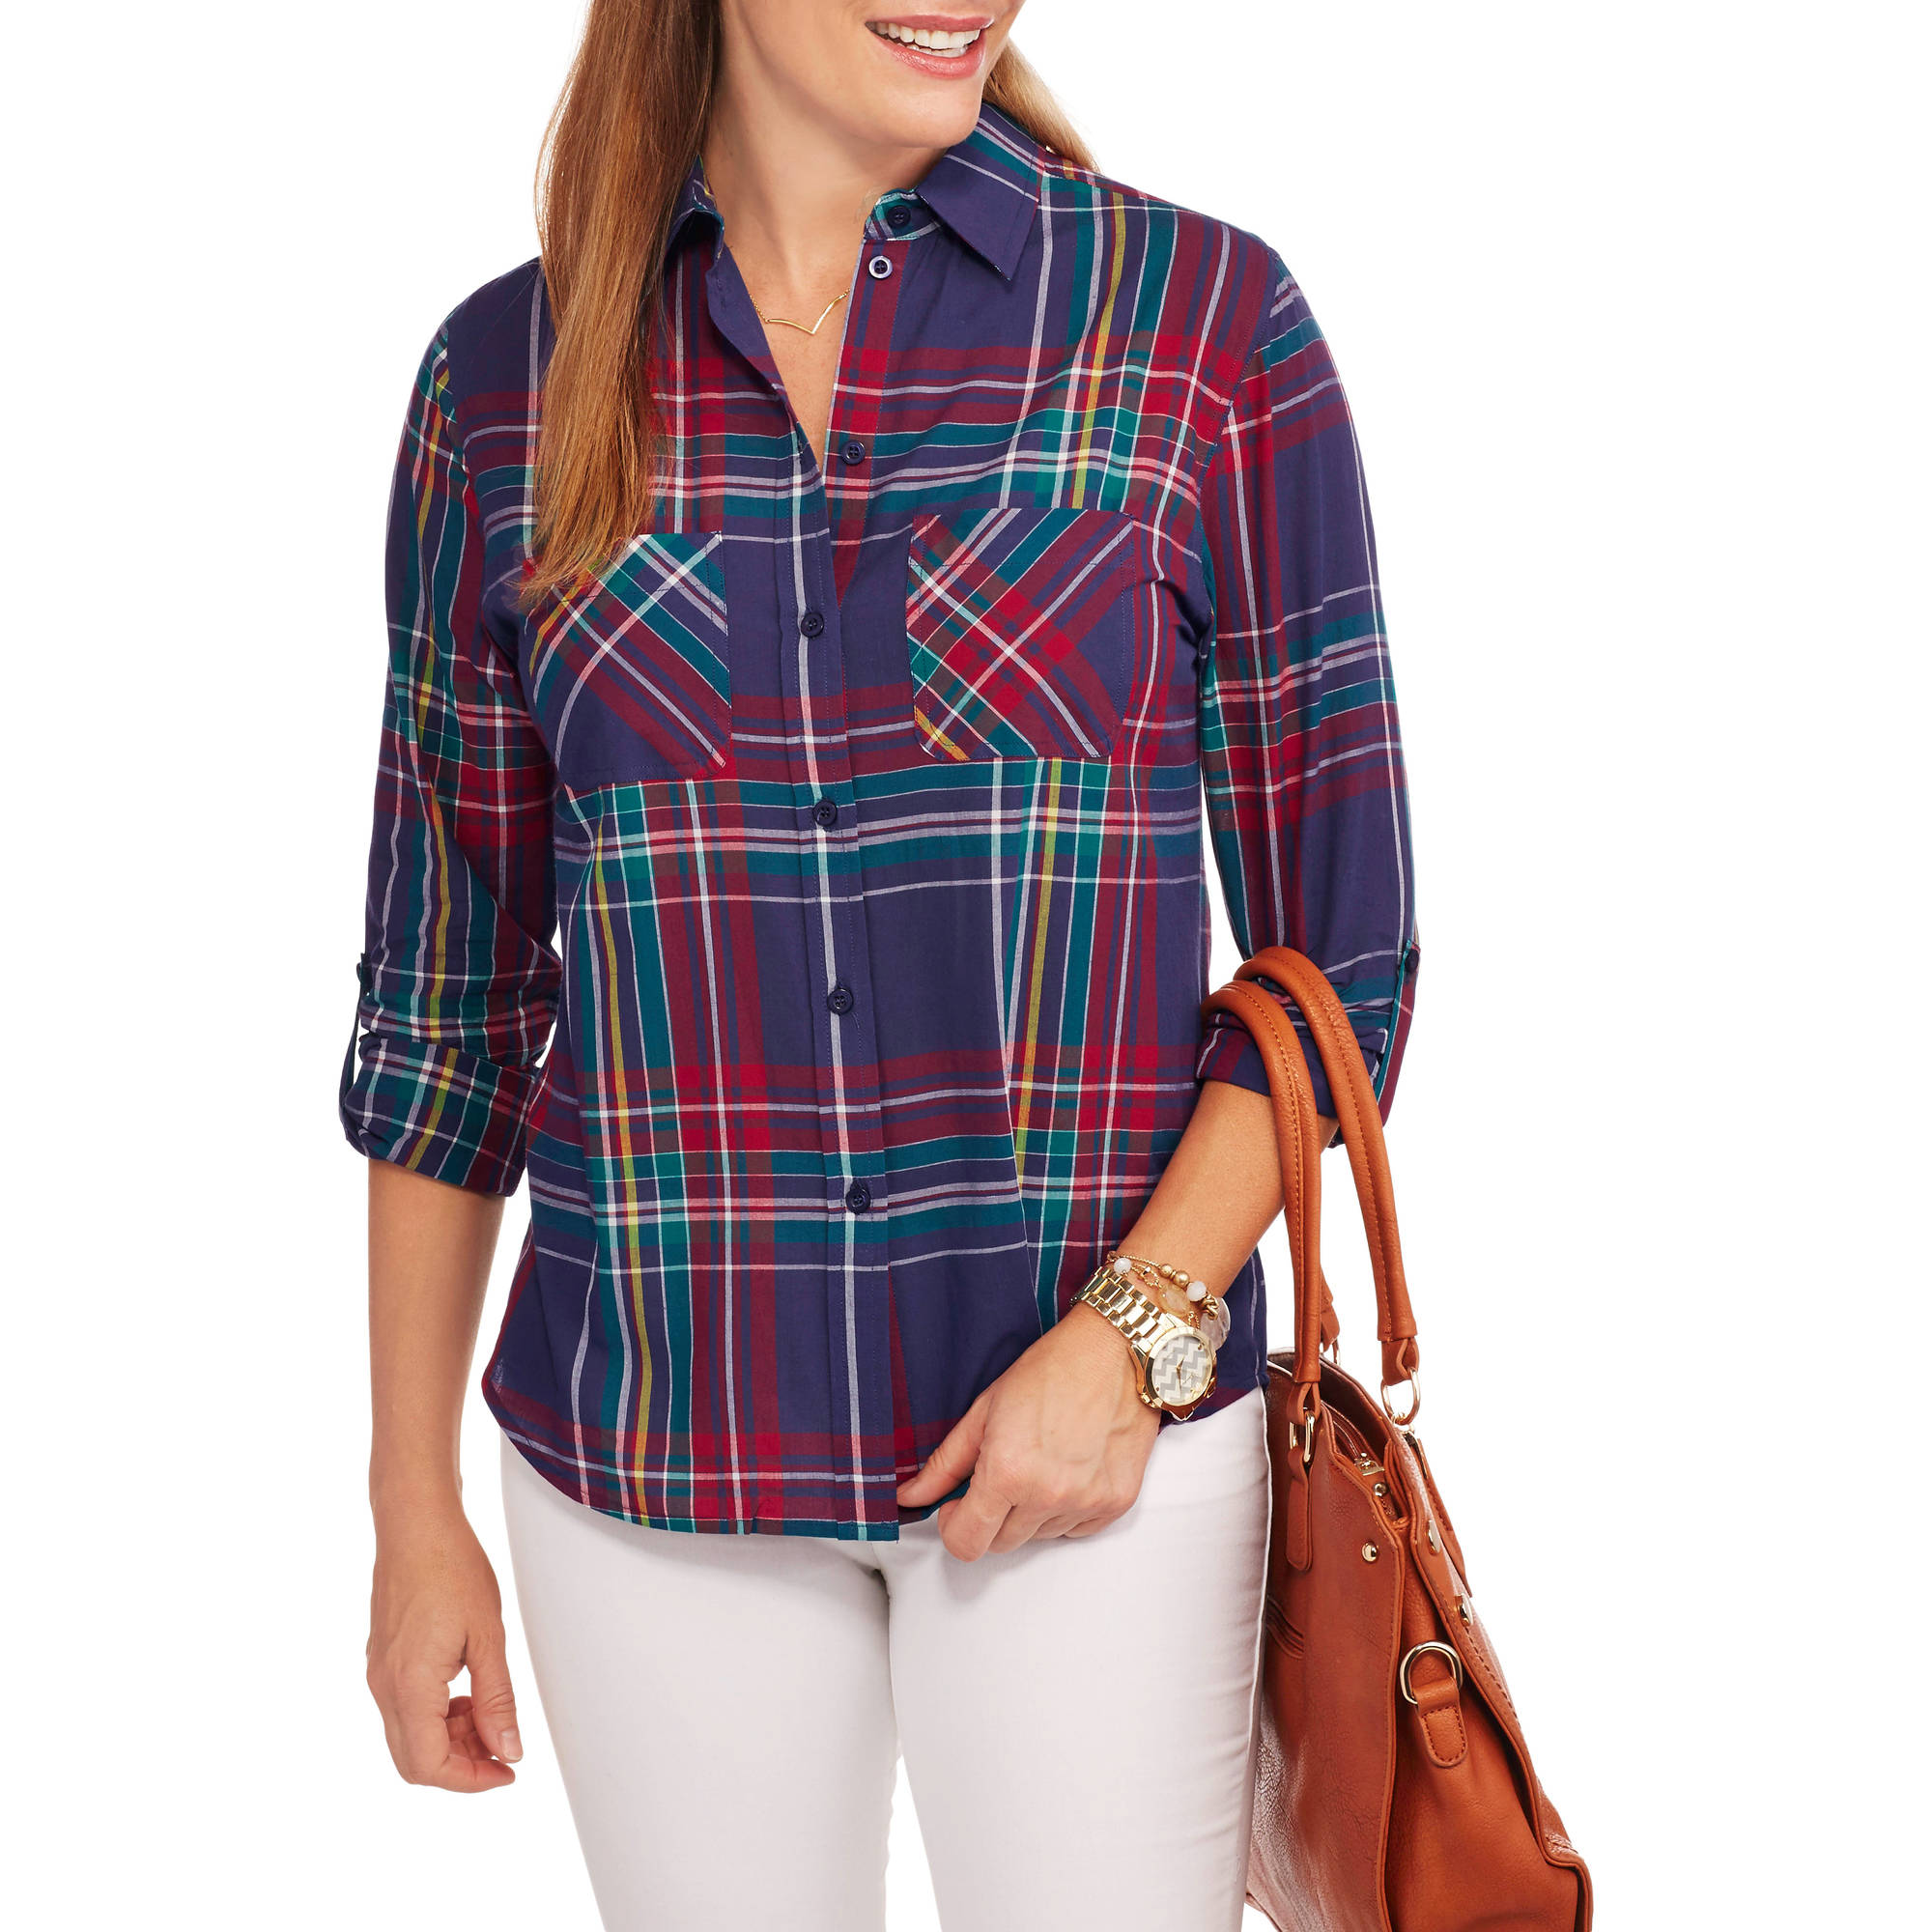 Brooke Leigh Women's Sheer Plaid Blouse